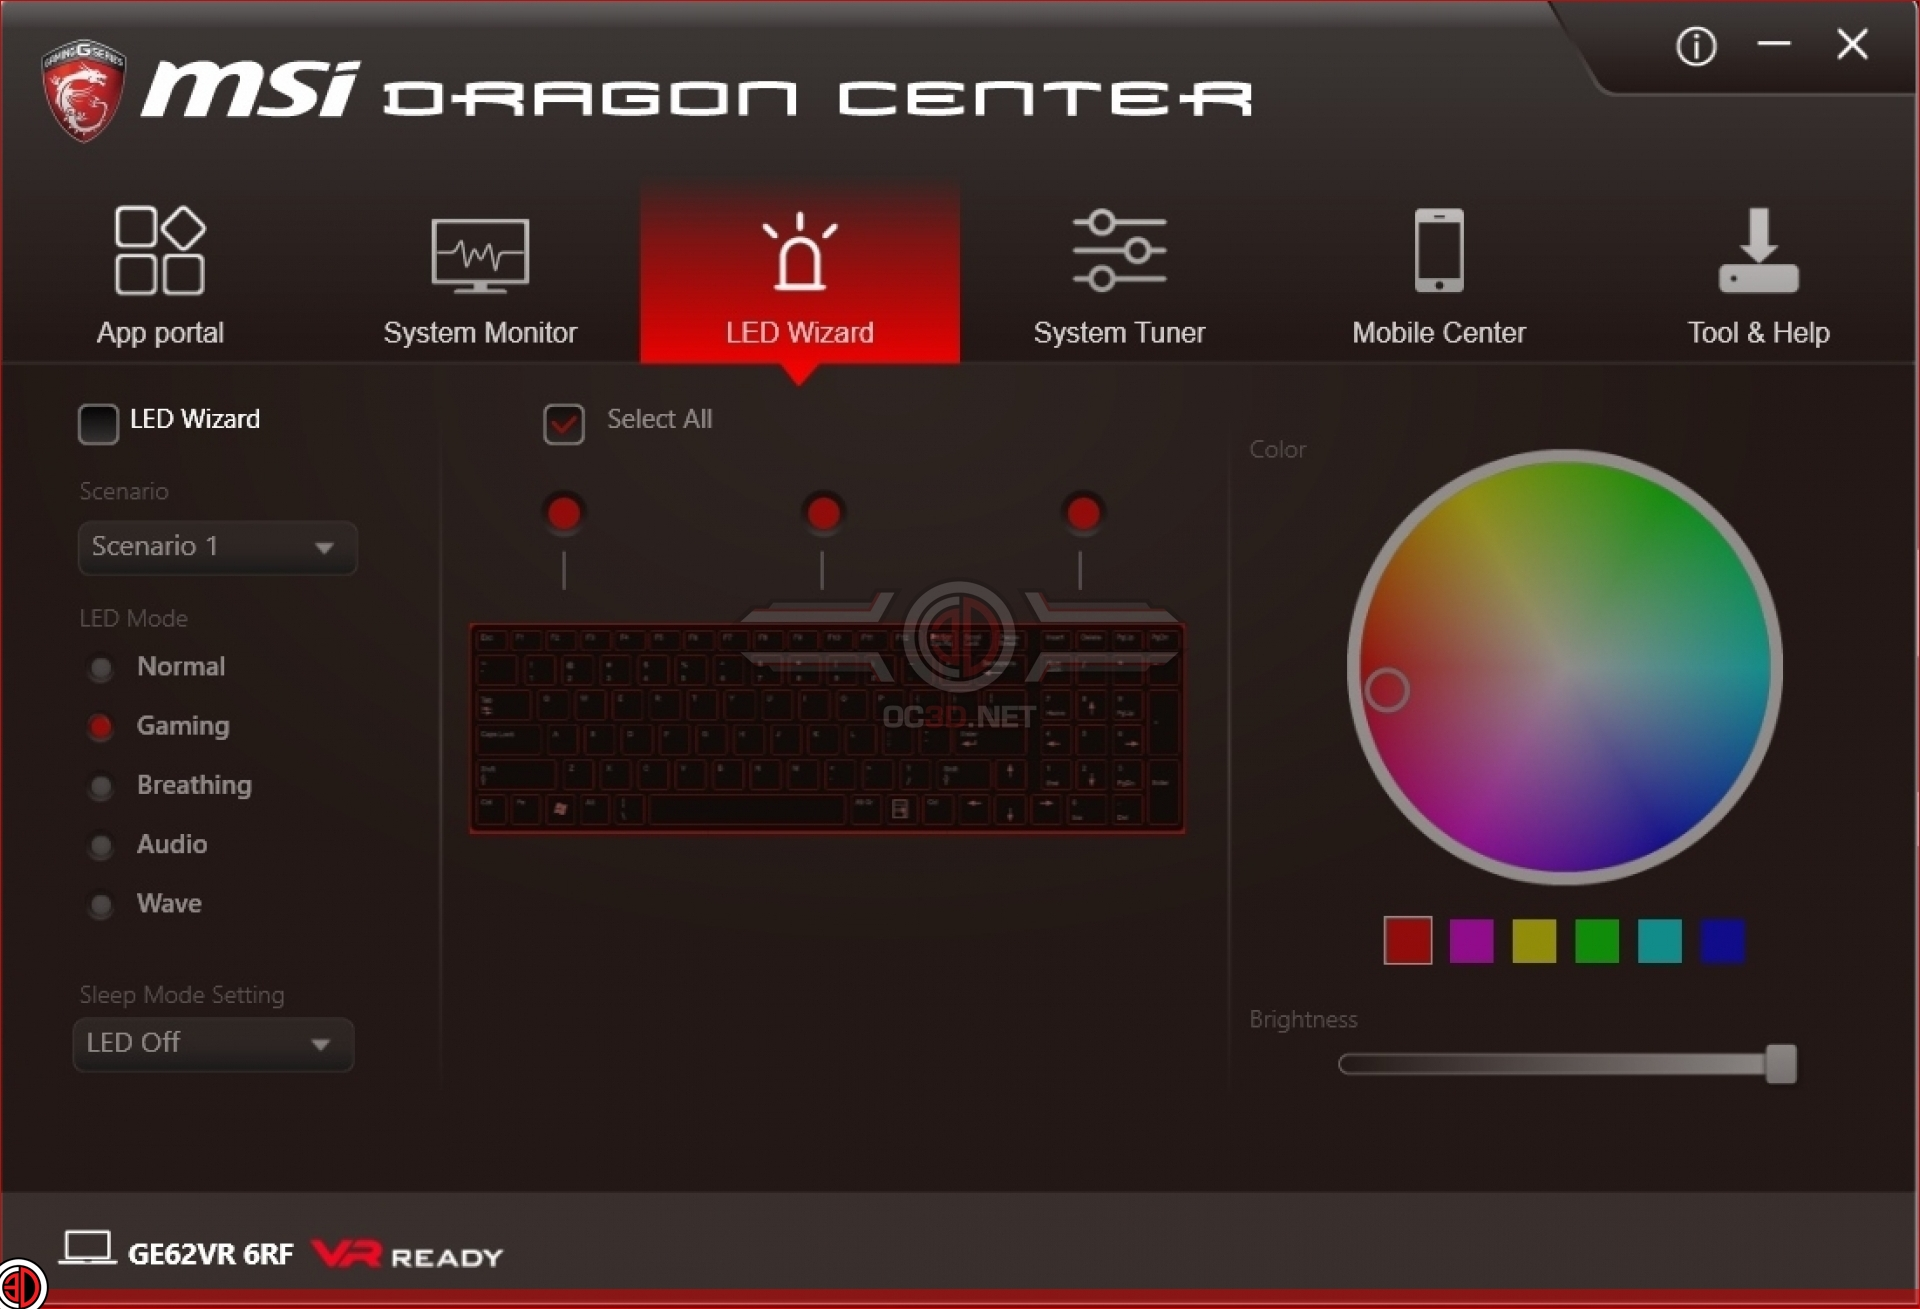 how to stop msi dragon popups on laptop